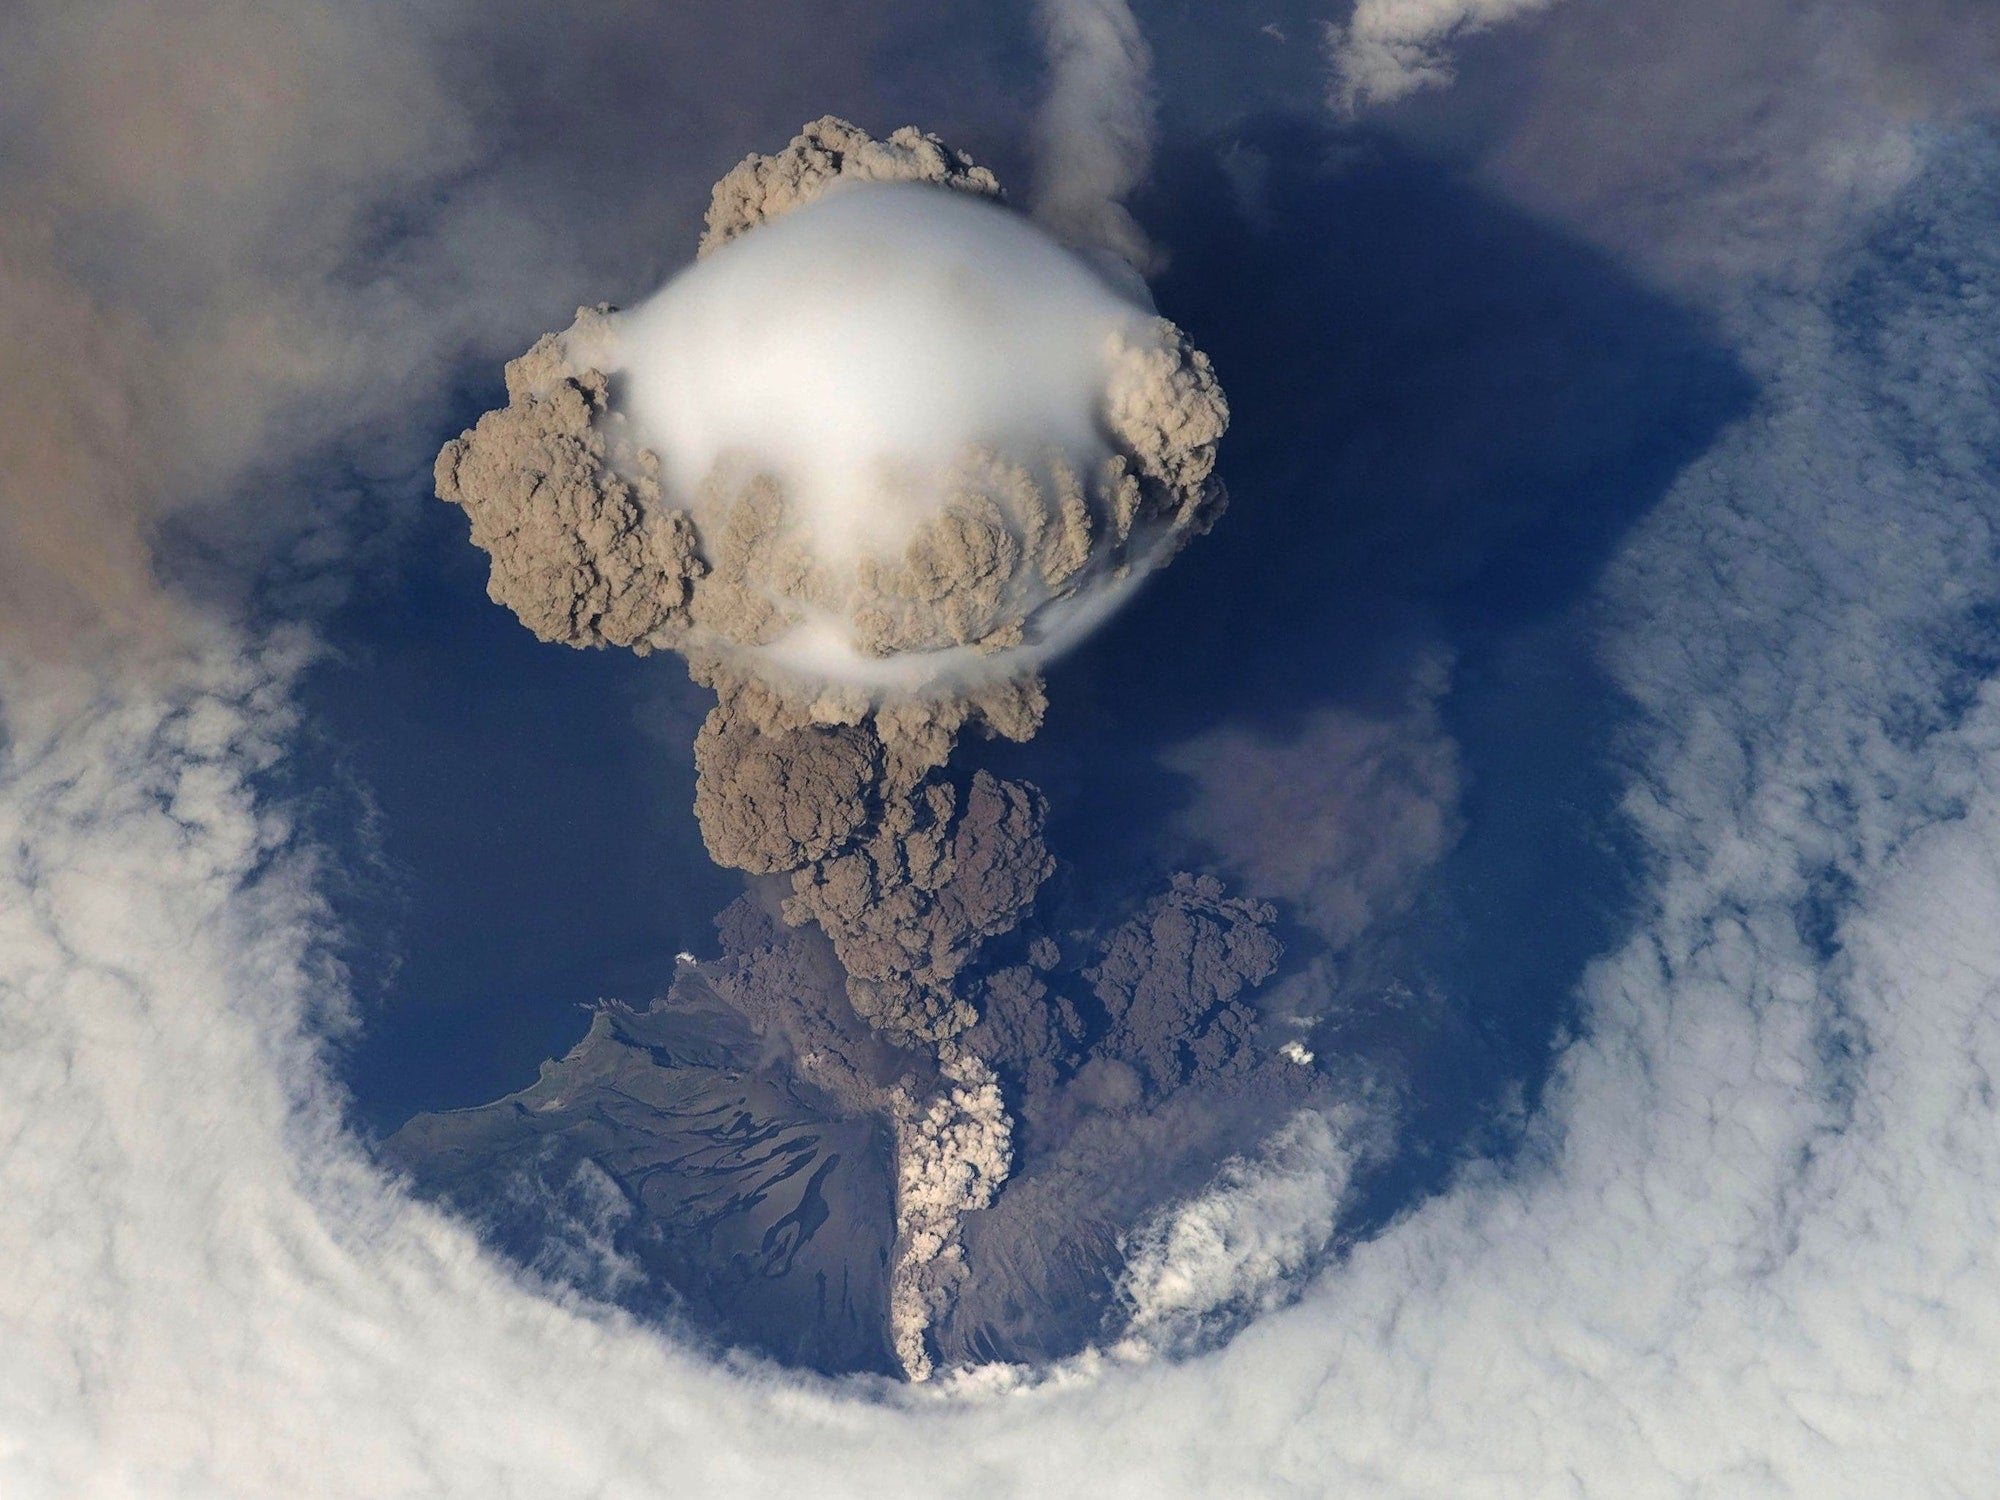 view from above an erupting volcano